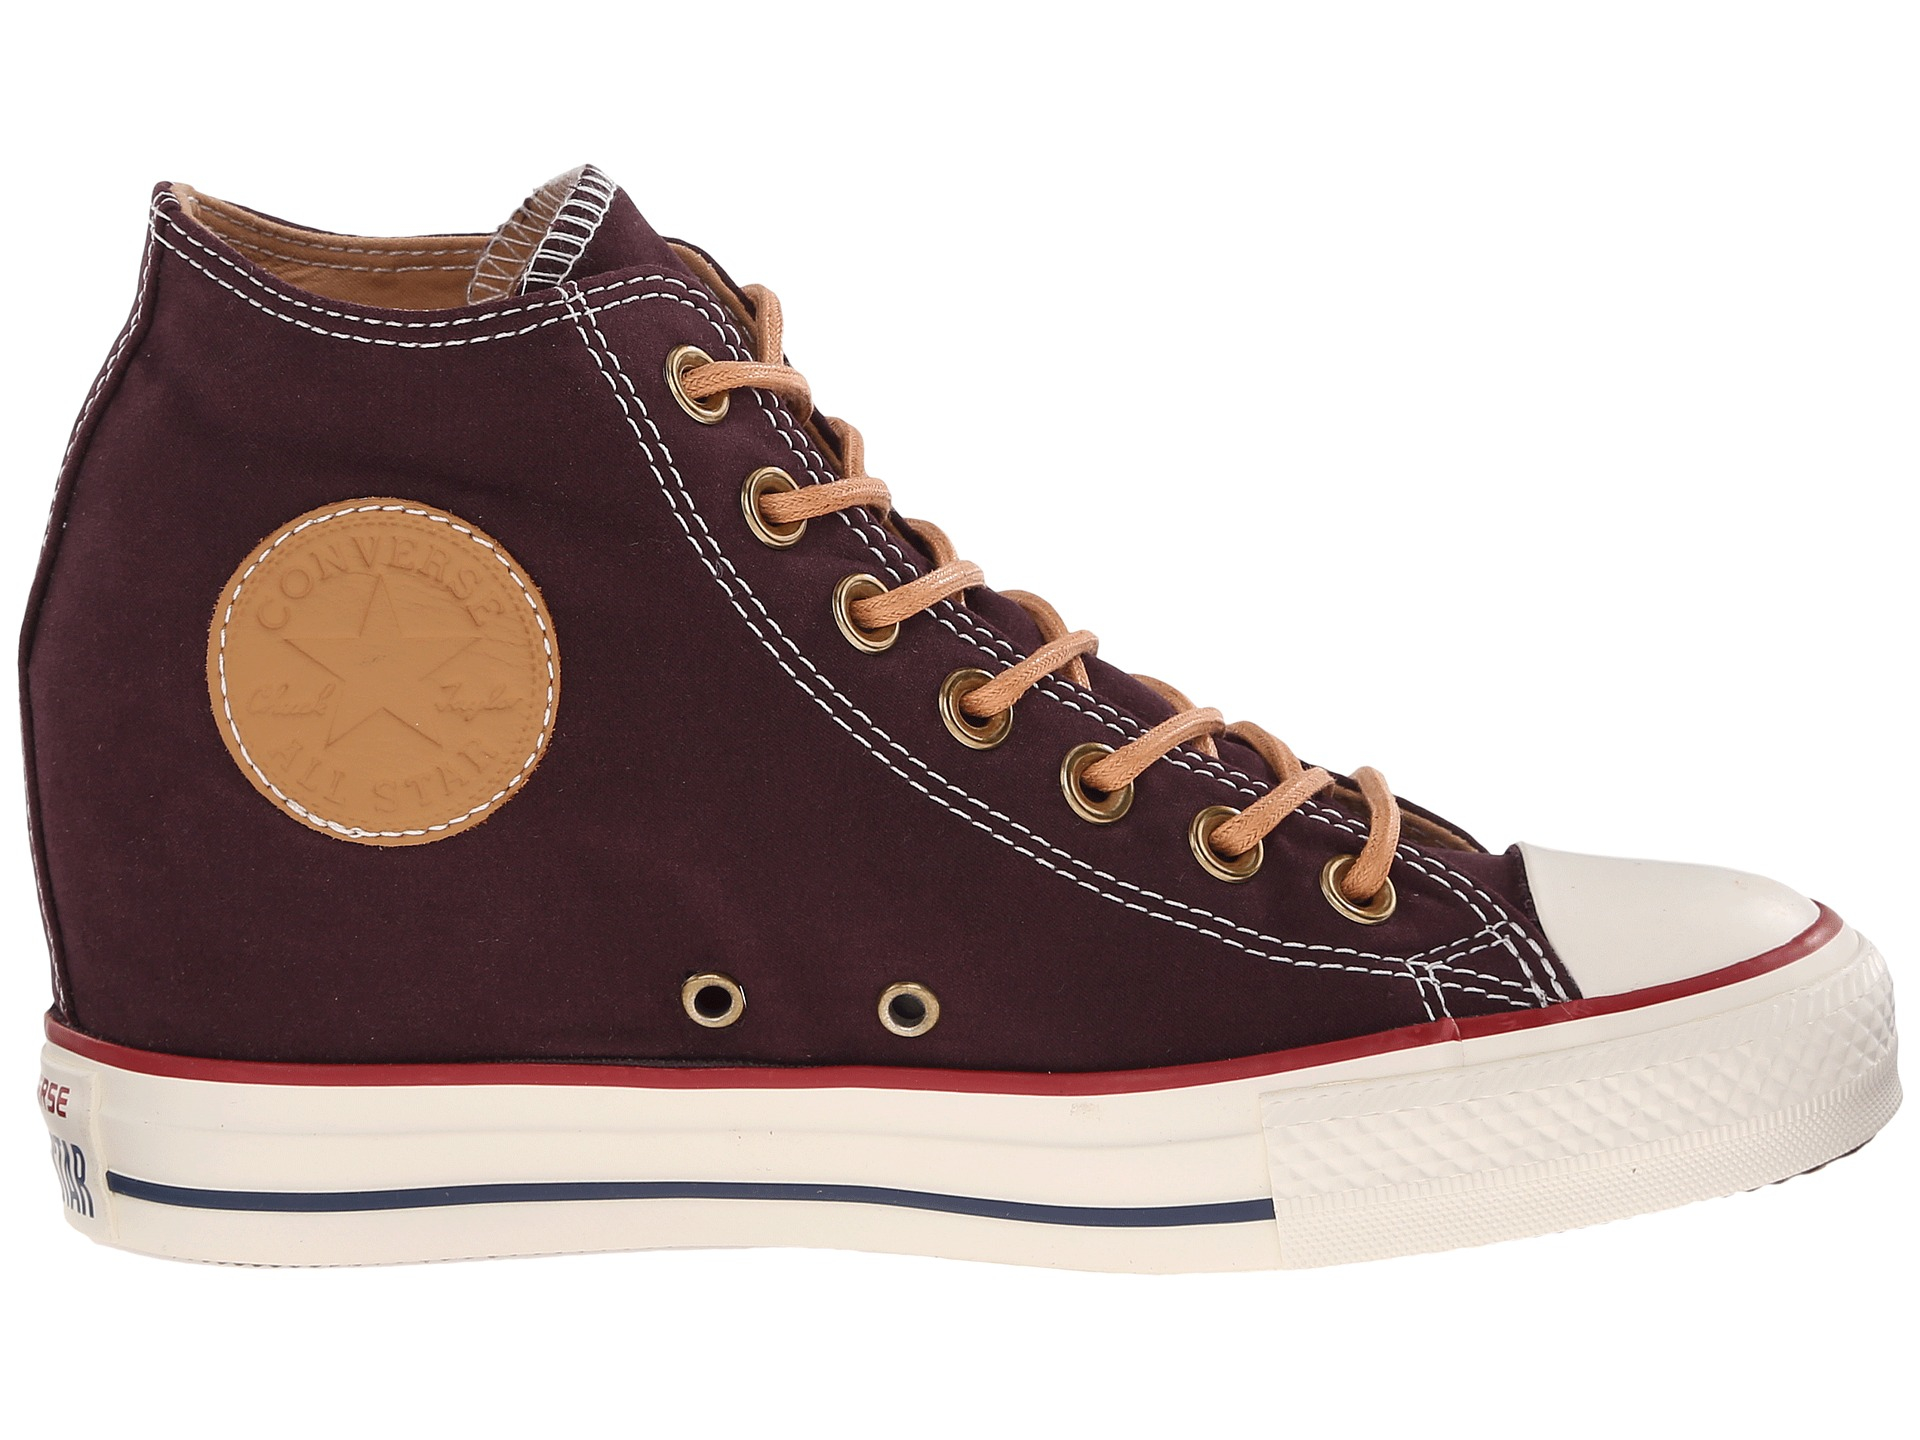 5653903f61a Gallery. Previously sold at  Zappos · Women s Converse Chuck Taylor ...